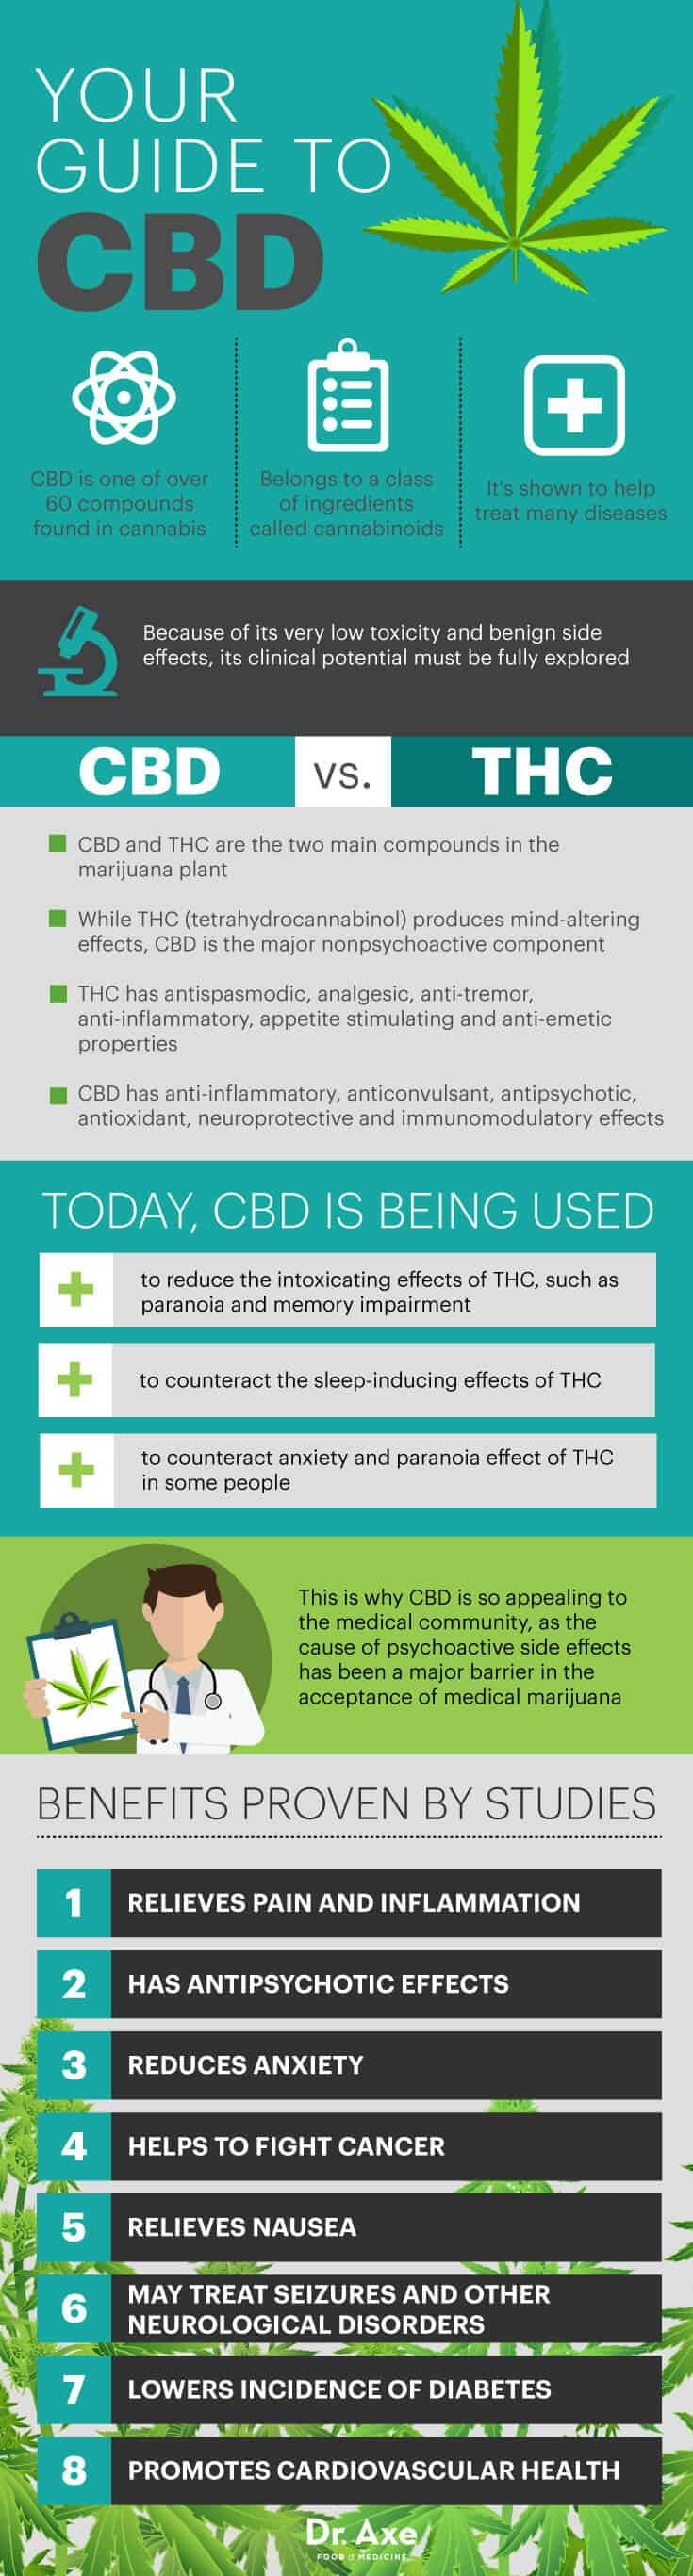 CBD guide - Dr. Axe